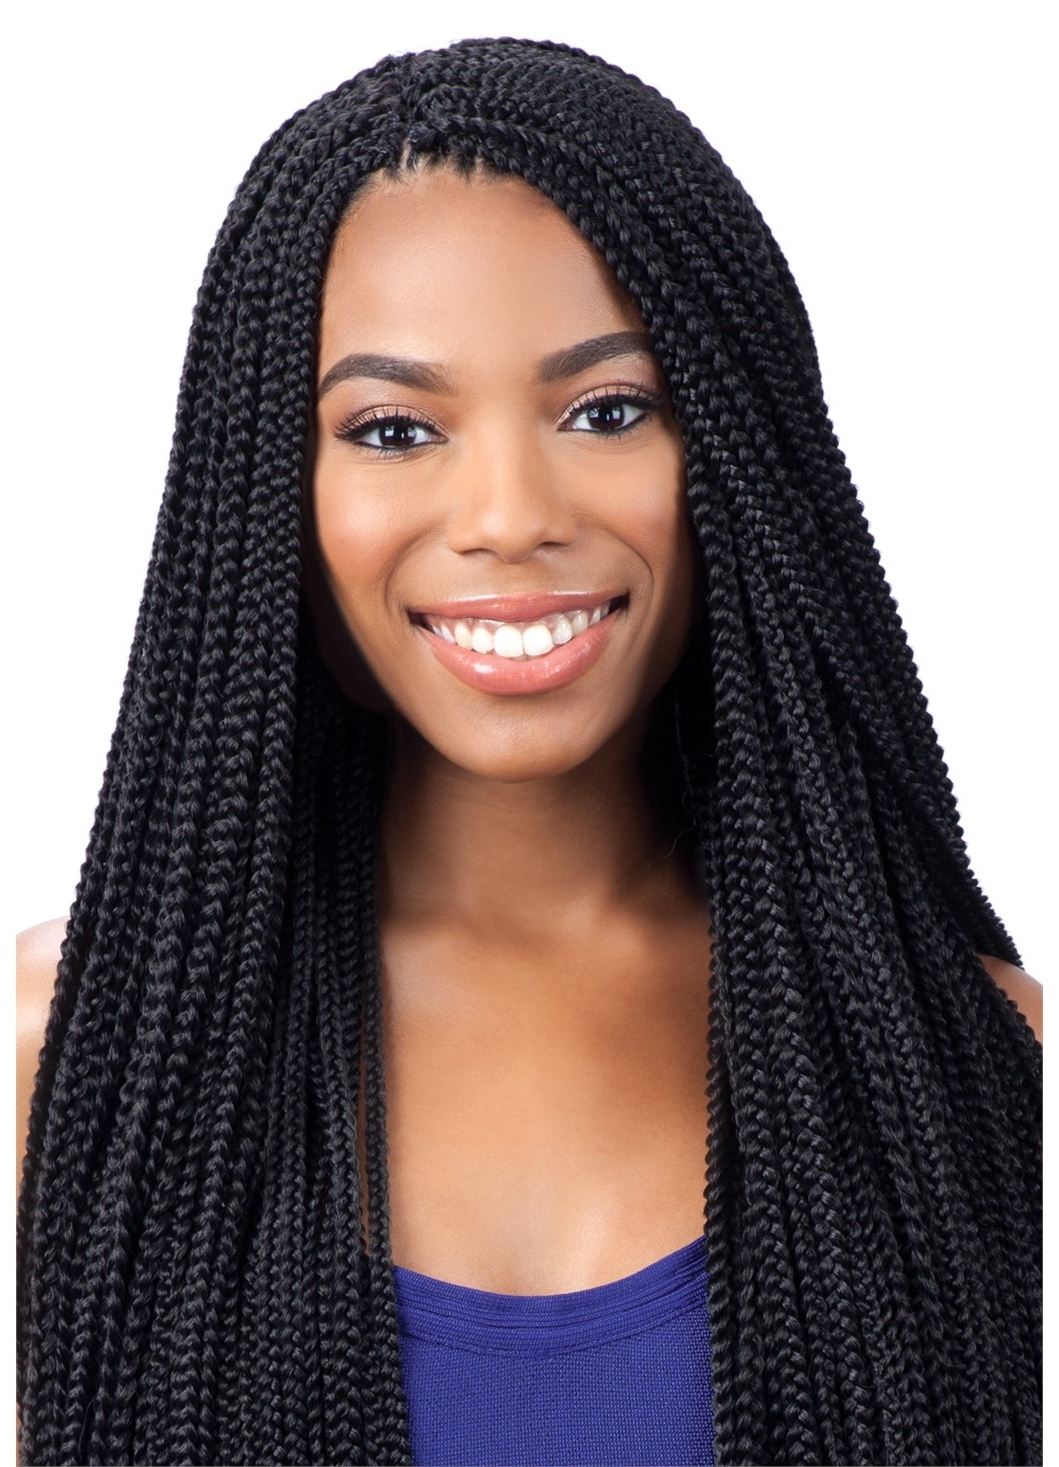 2017 Braided Hairstyles With Crochet In Small Box Braids – Freetress Synthetic Crochet Braid Hair Pre Looped (View 3 of 15)